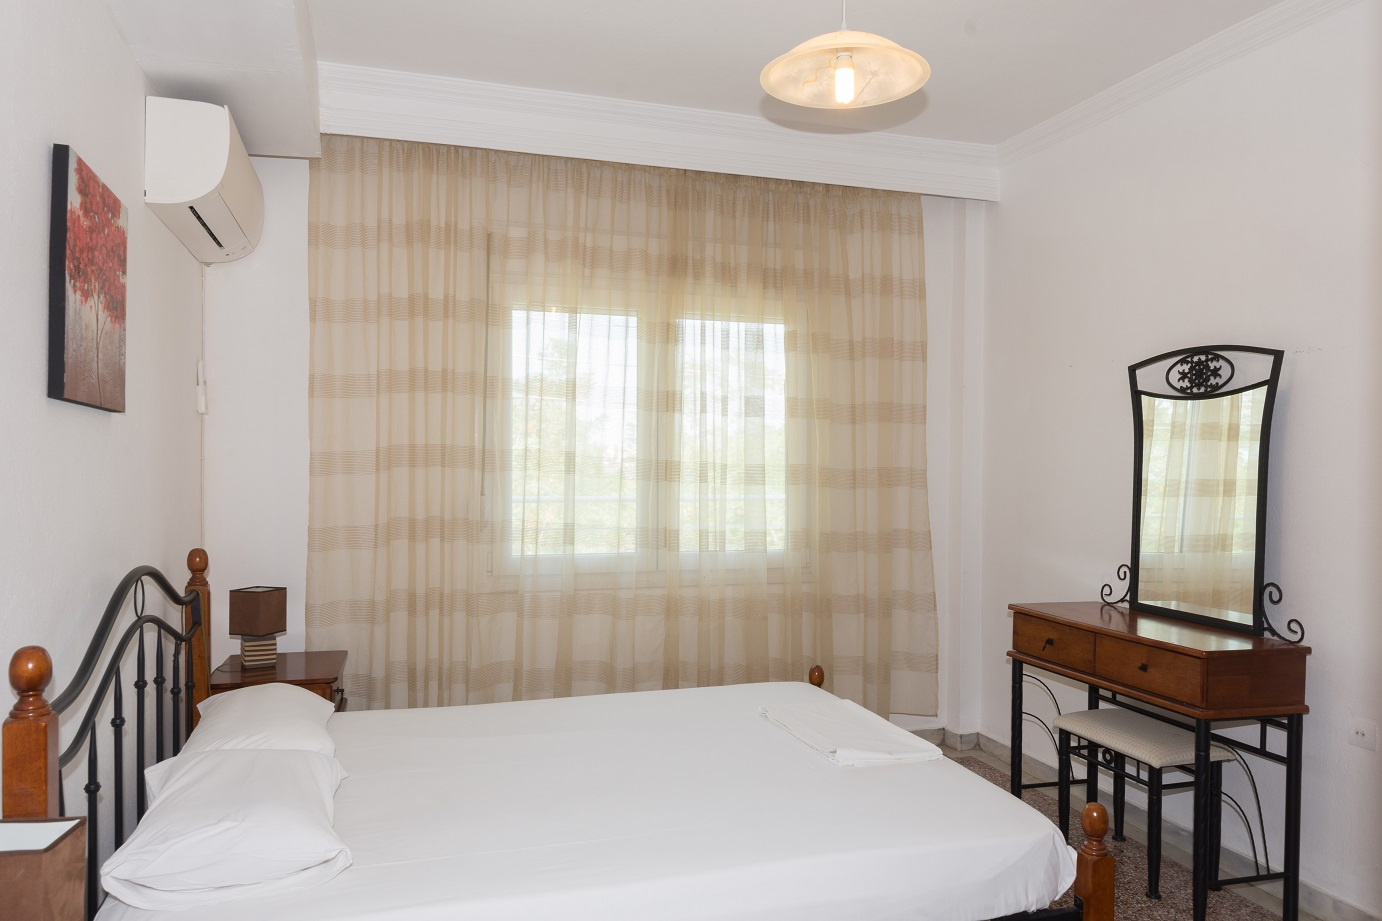 Apartment-Hotel_Karayiannis-Keramoti-Master-Bedroom